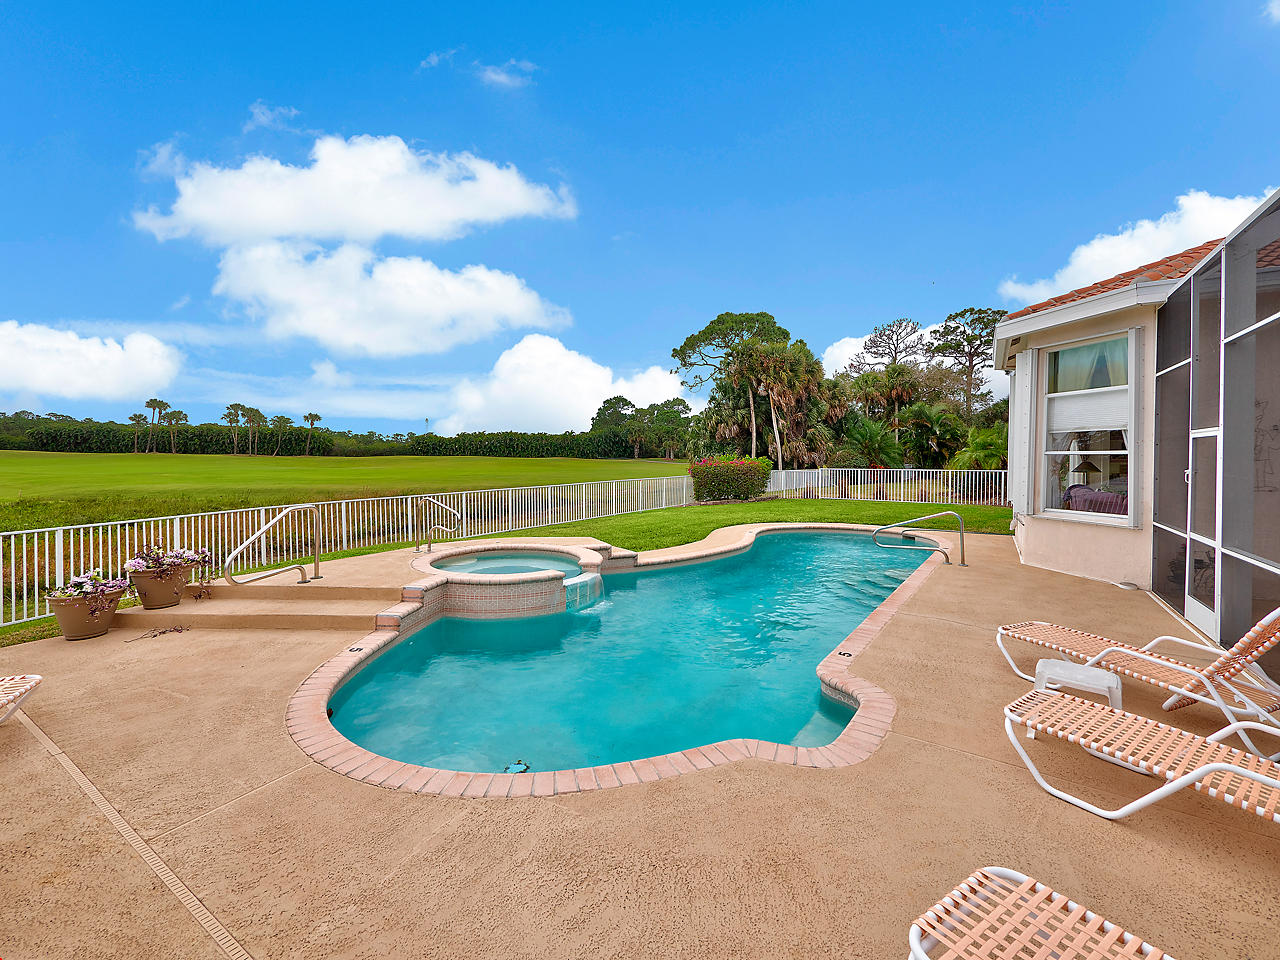 7606 Preserve Court, West Palm Beach, Florida 33412, 3 Bedrooms Bedrooms, ,2.1 BathroomsBathrooms,A,Single family,Preserve,RX-10498600